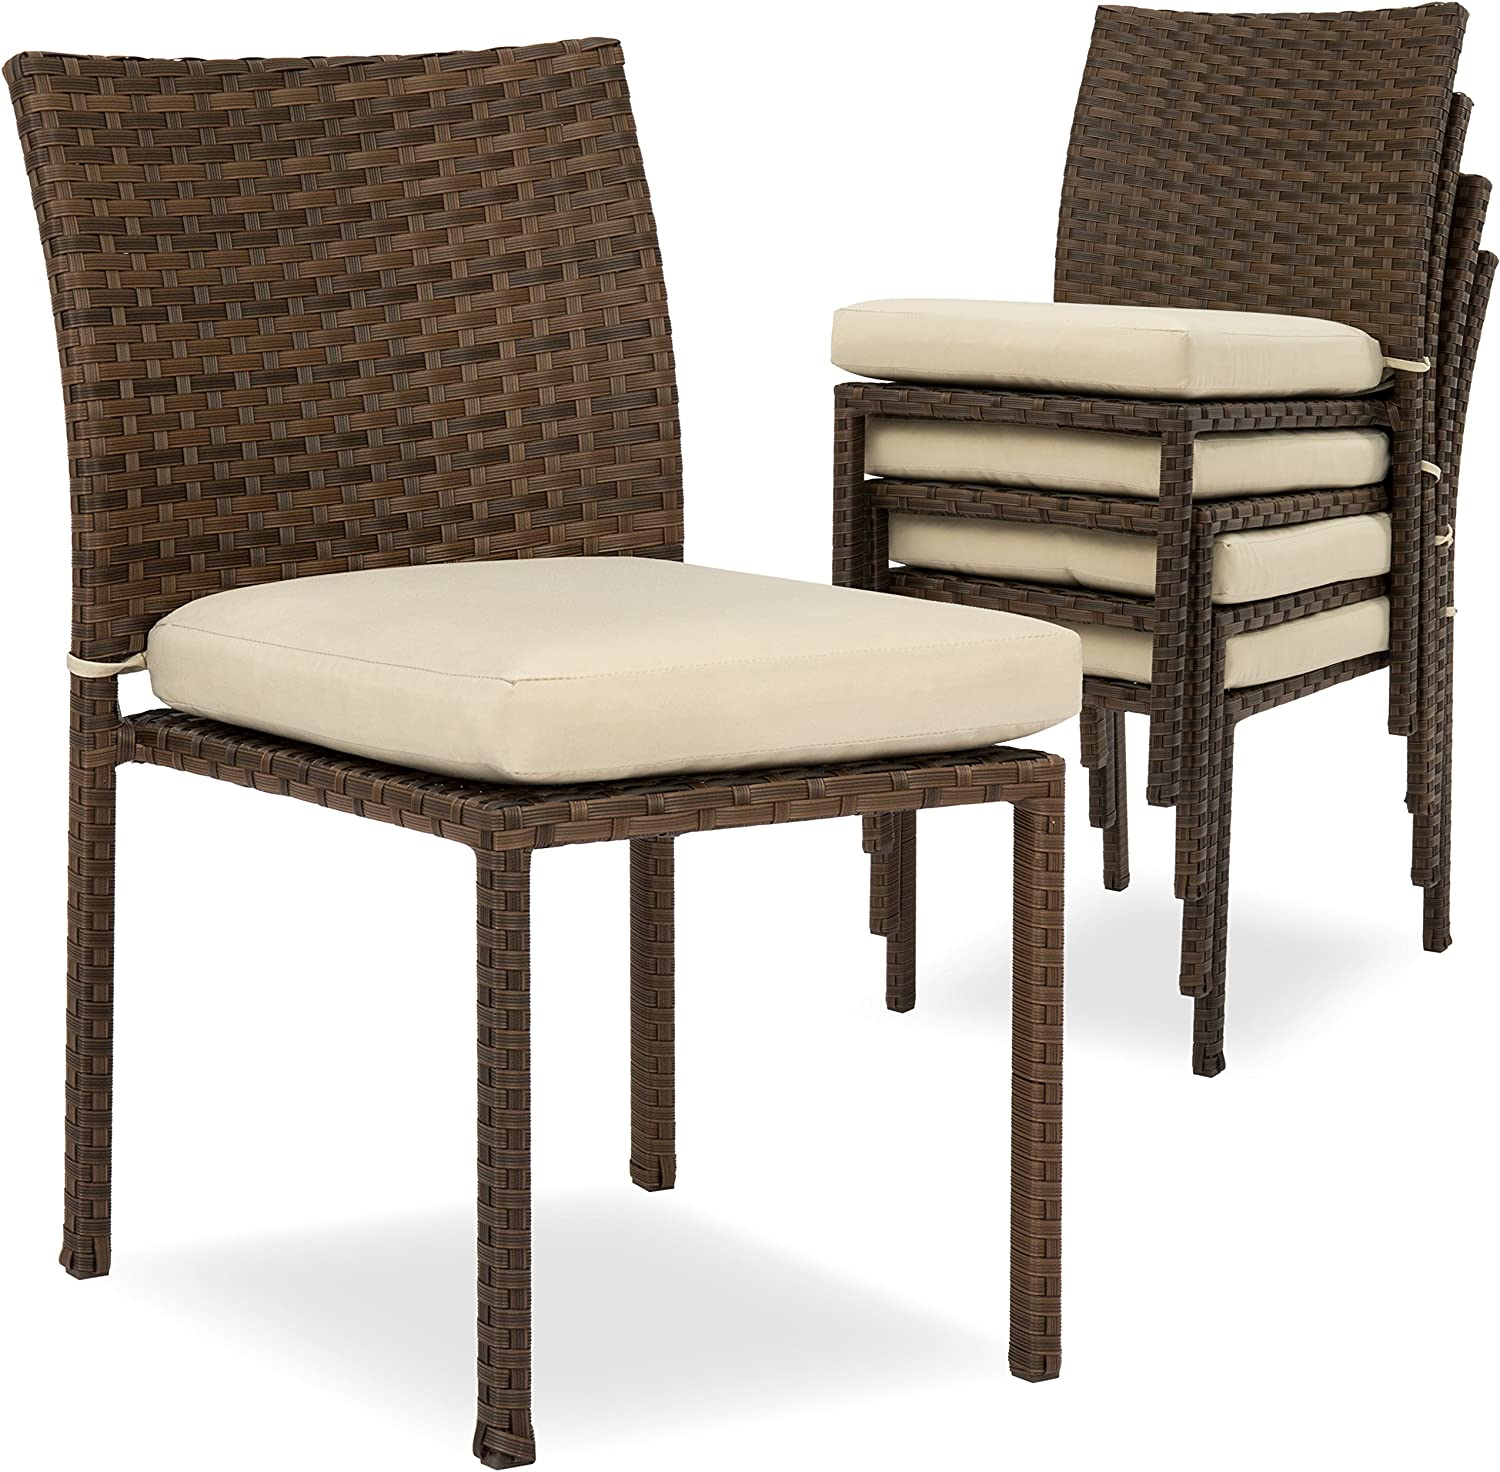 Best Choice Products Set of 4 Stackable Outdoor Patio Wicker Chairs w/Cushions, UV-Resistant Finish, and Steel Frame, Brown